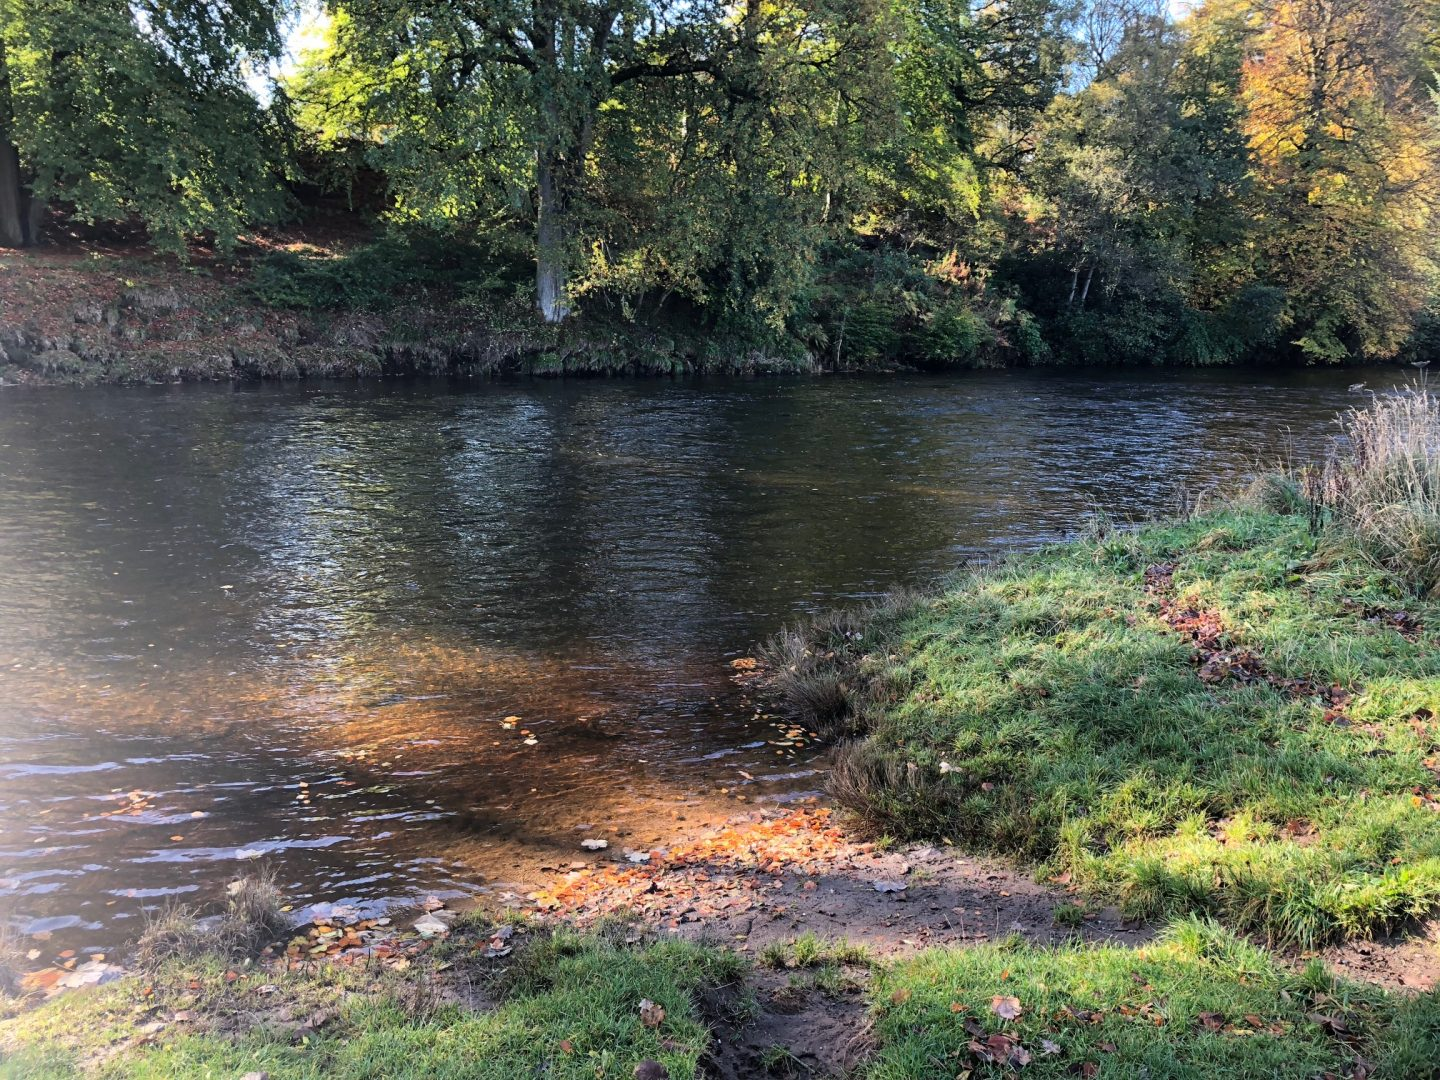 River Teith in Scotland, beautiful spot for Wild Swimming, looking peaceful and serene.